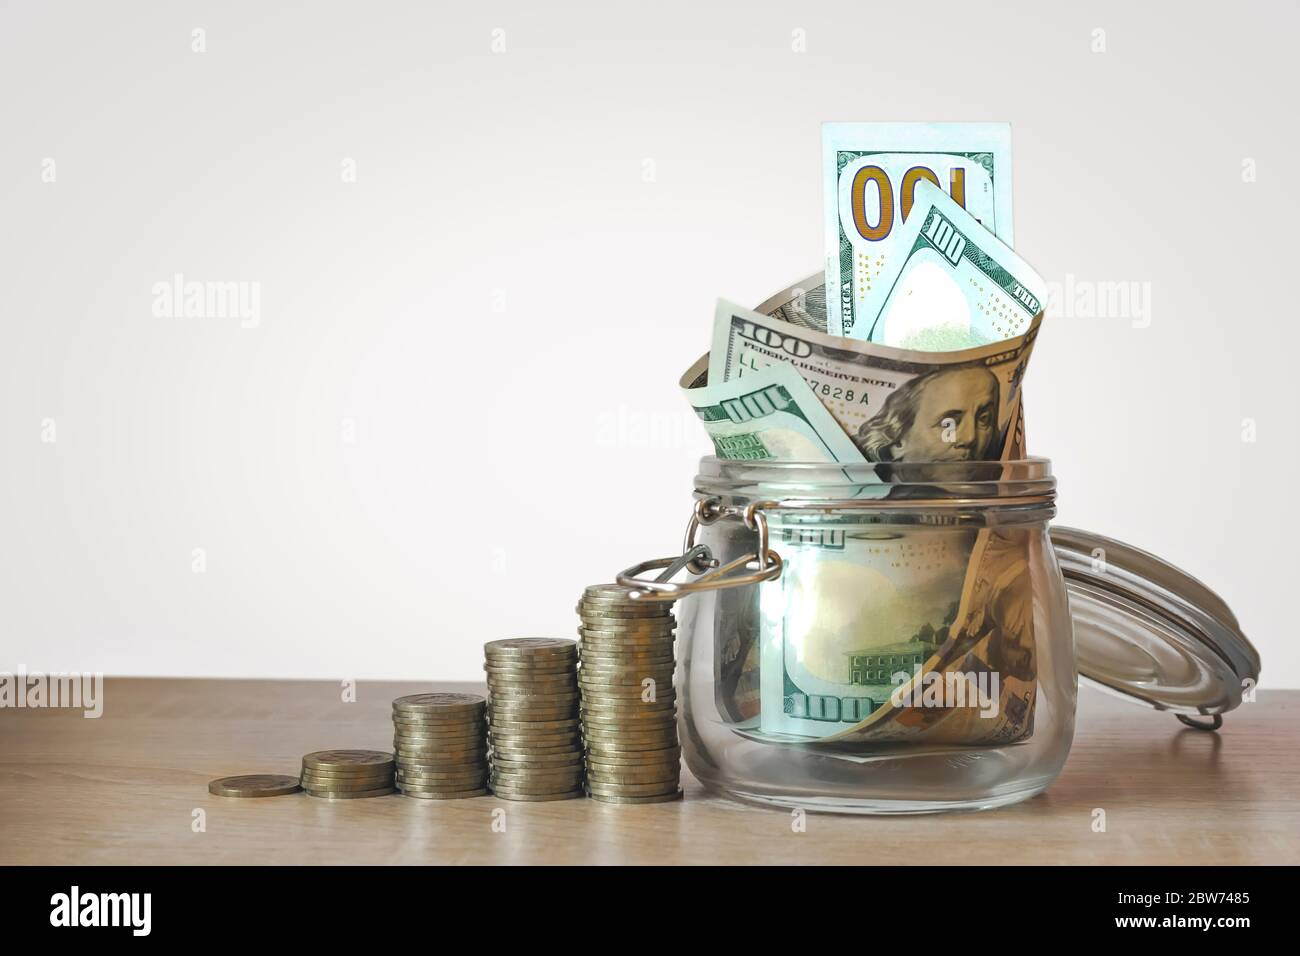 Coins Stack And Us Dollar Bills In The Glass Jar Concept Of Money Saving Financial Savings Money And Income Investment Ideas And Financial Manageme Stock Photo Alamy